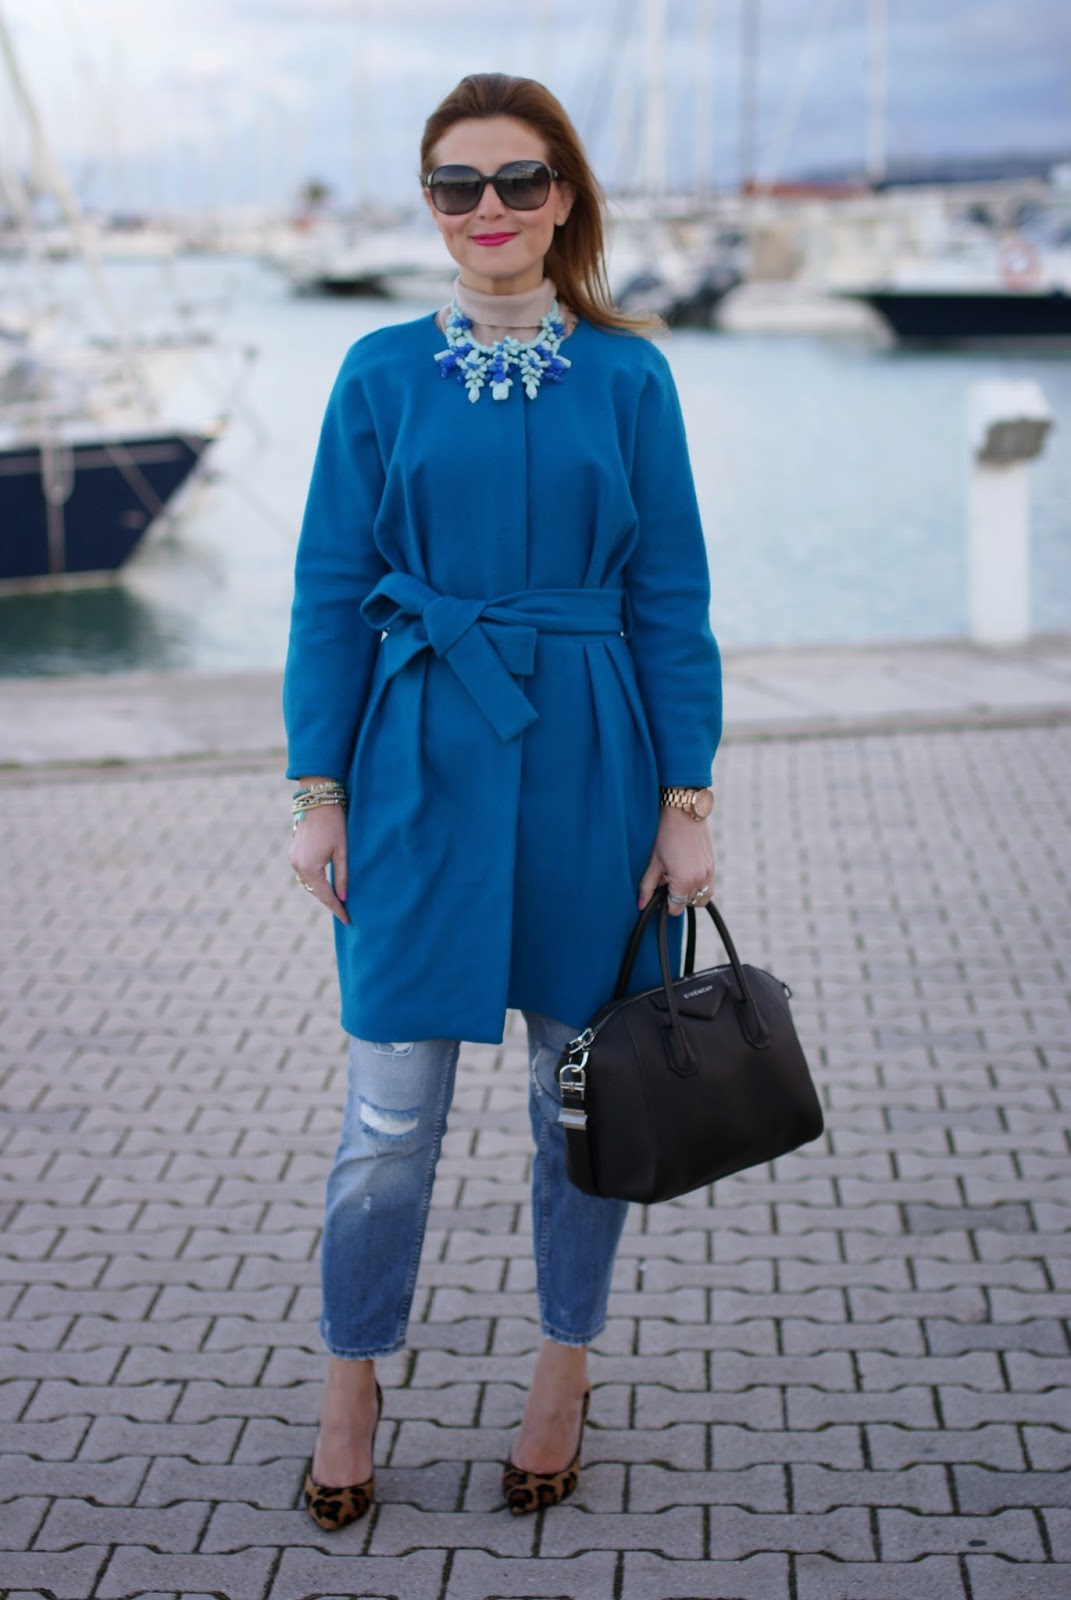 Givenchy Antigona bag, Zara blue statement necklace, Sapphire blue coat, Fashion and Cookies, fashion blogger